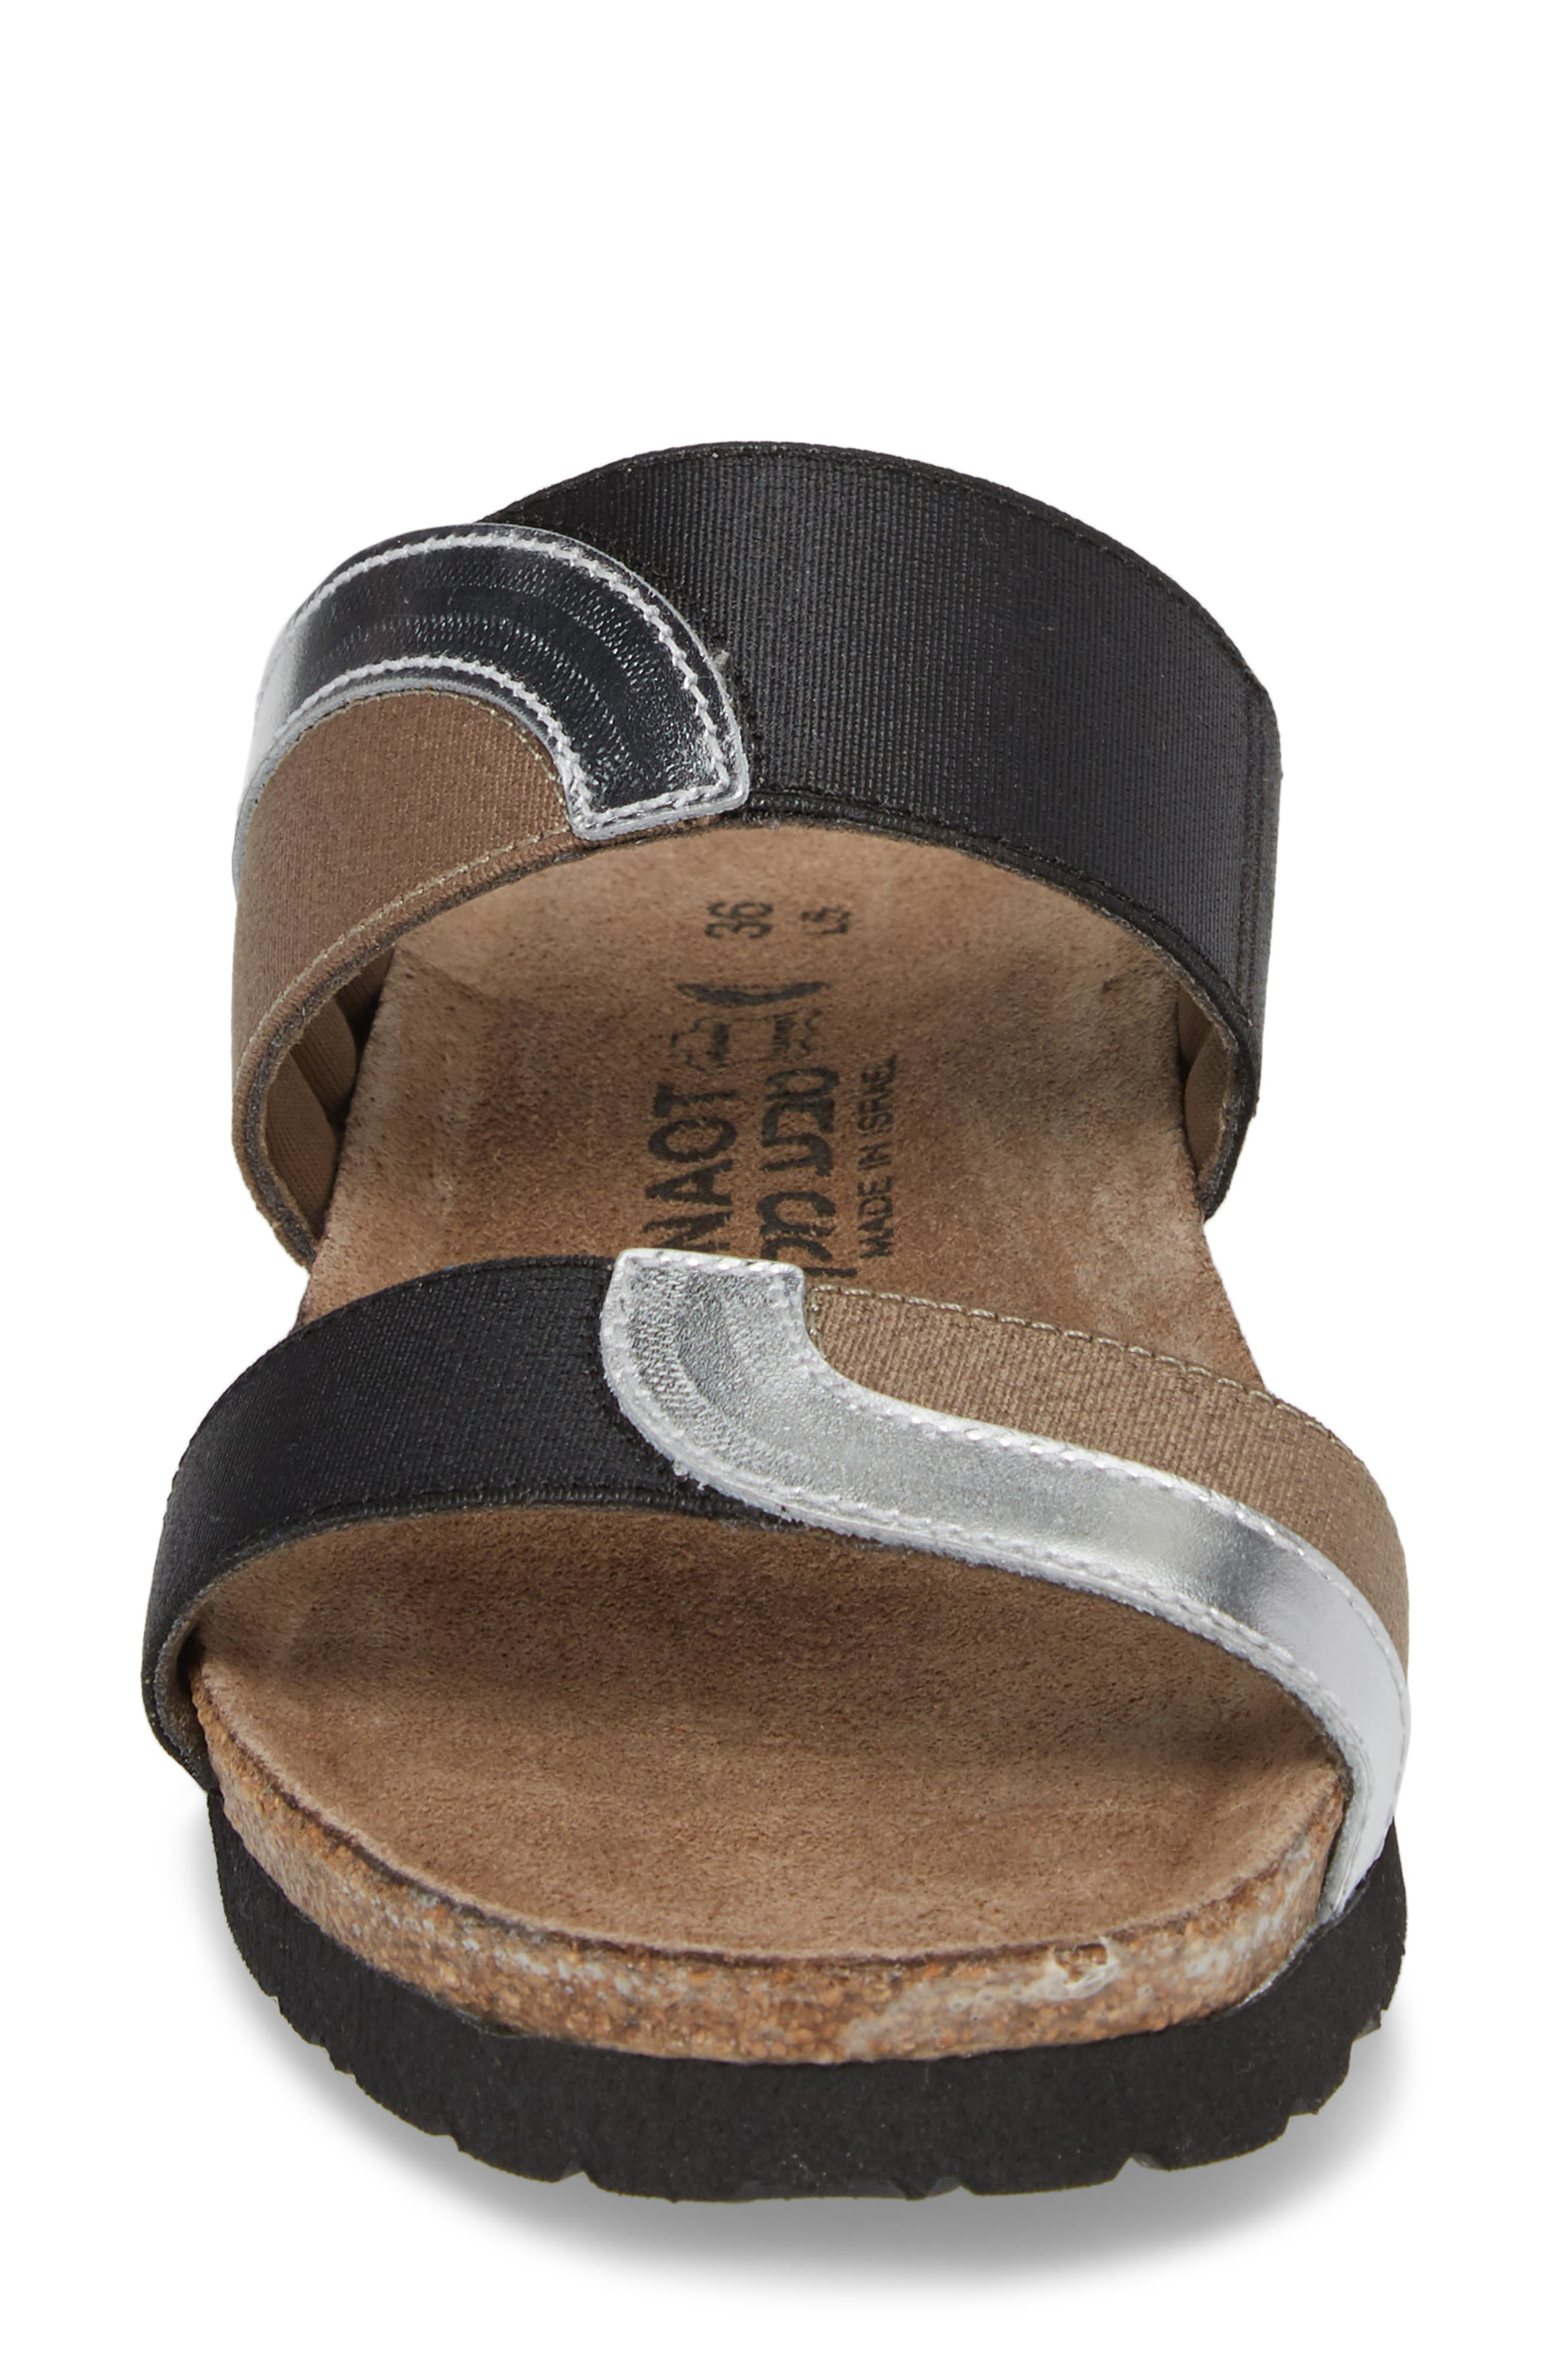 Frankie Slide Sandal,                             Alternate thumbnail 4, color,                             SILVER MIRROR LEATHER